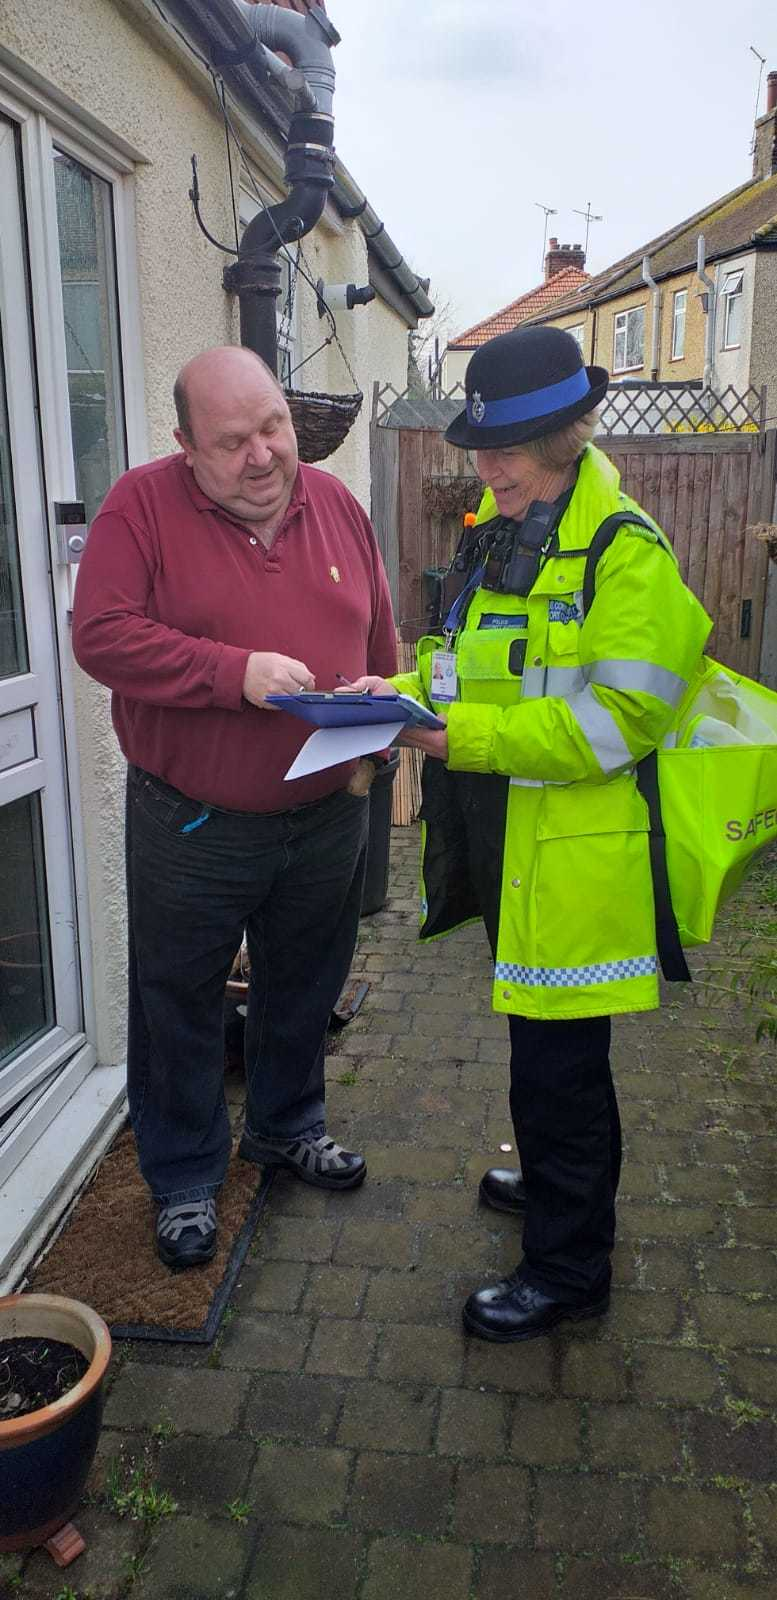 The event took place in Laurel Avenue, Potters Bar on Wednesday.